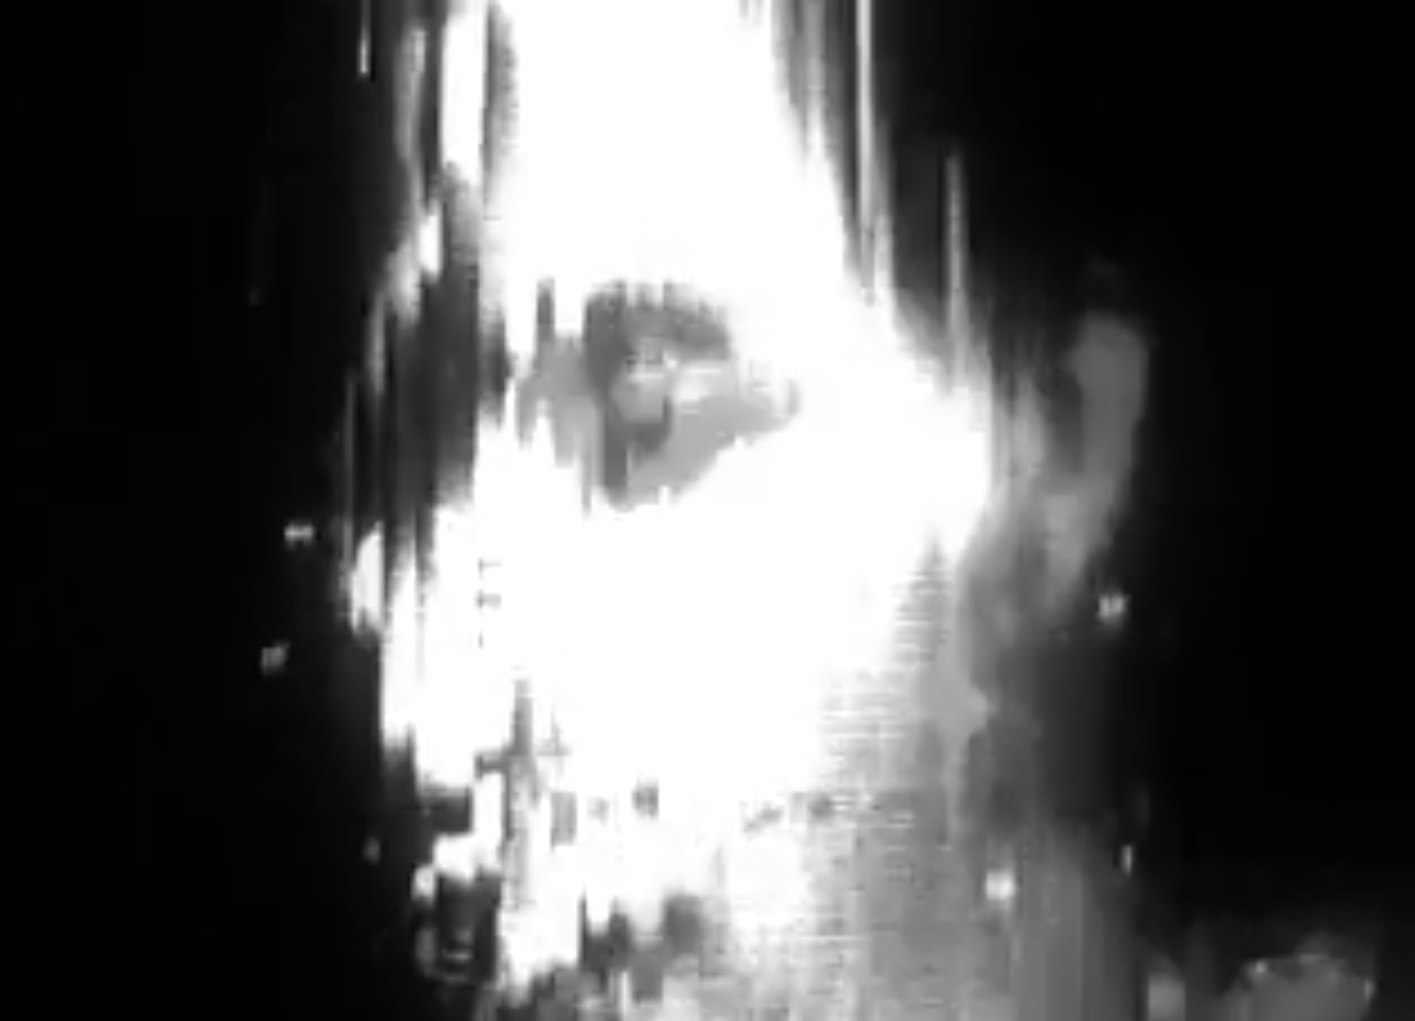 Evoking a disintegrating communique, this early digital video shreds and shifts the face of a young woman, often passing through episodes of skull like imagery or even complete abstraction.